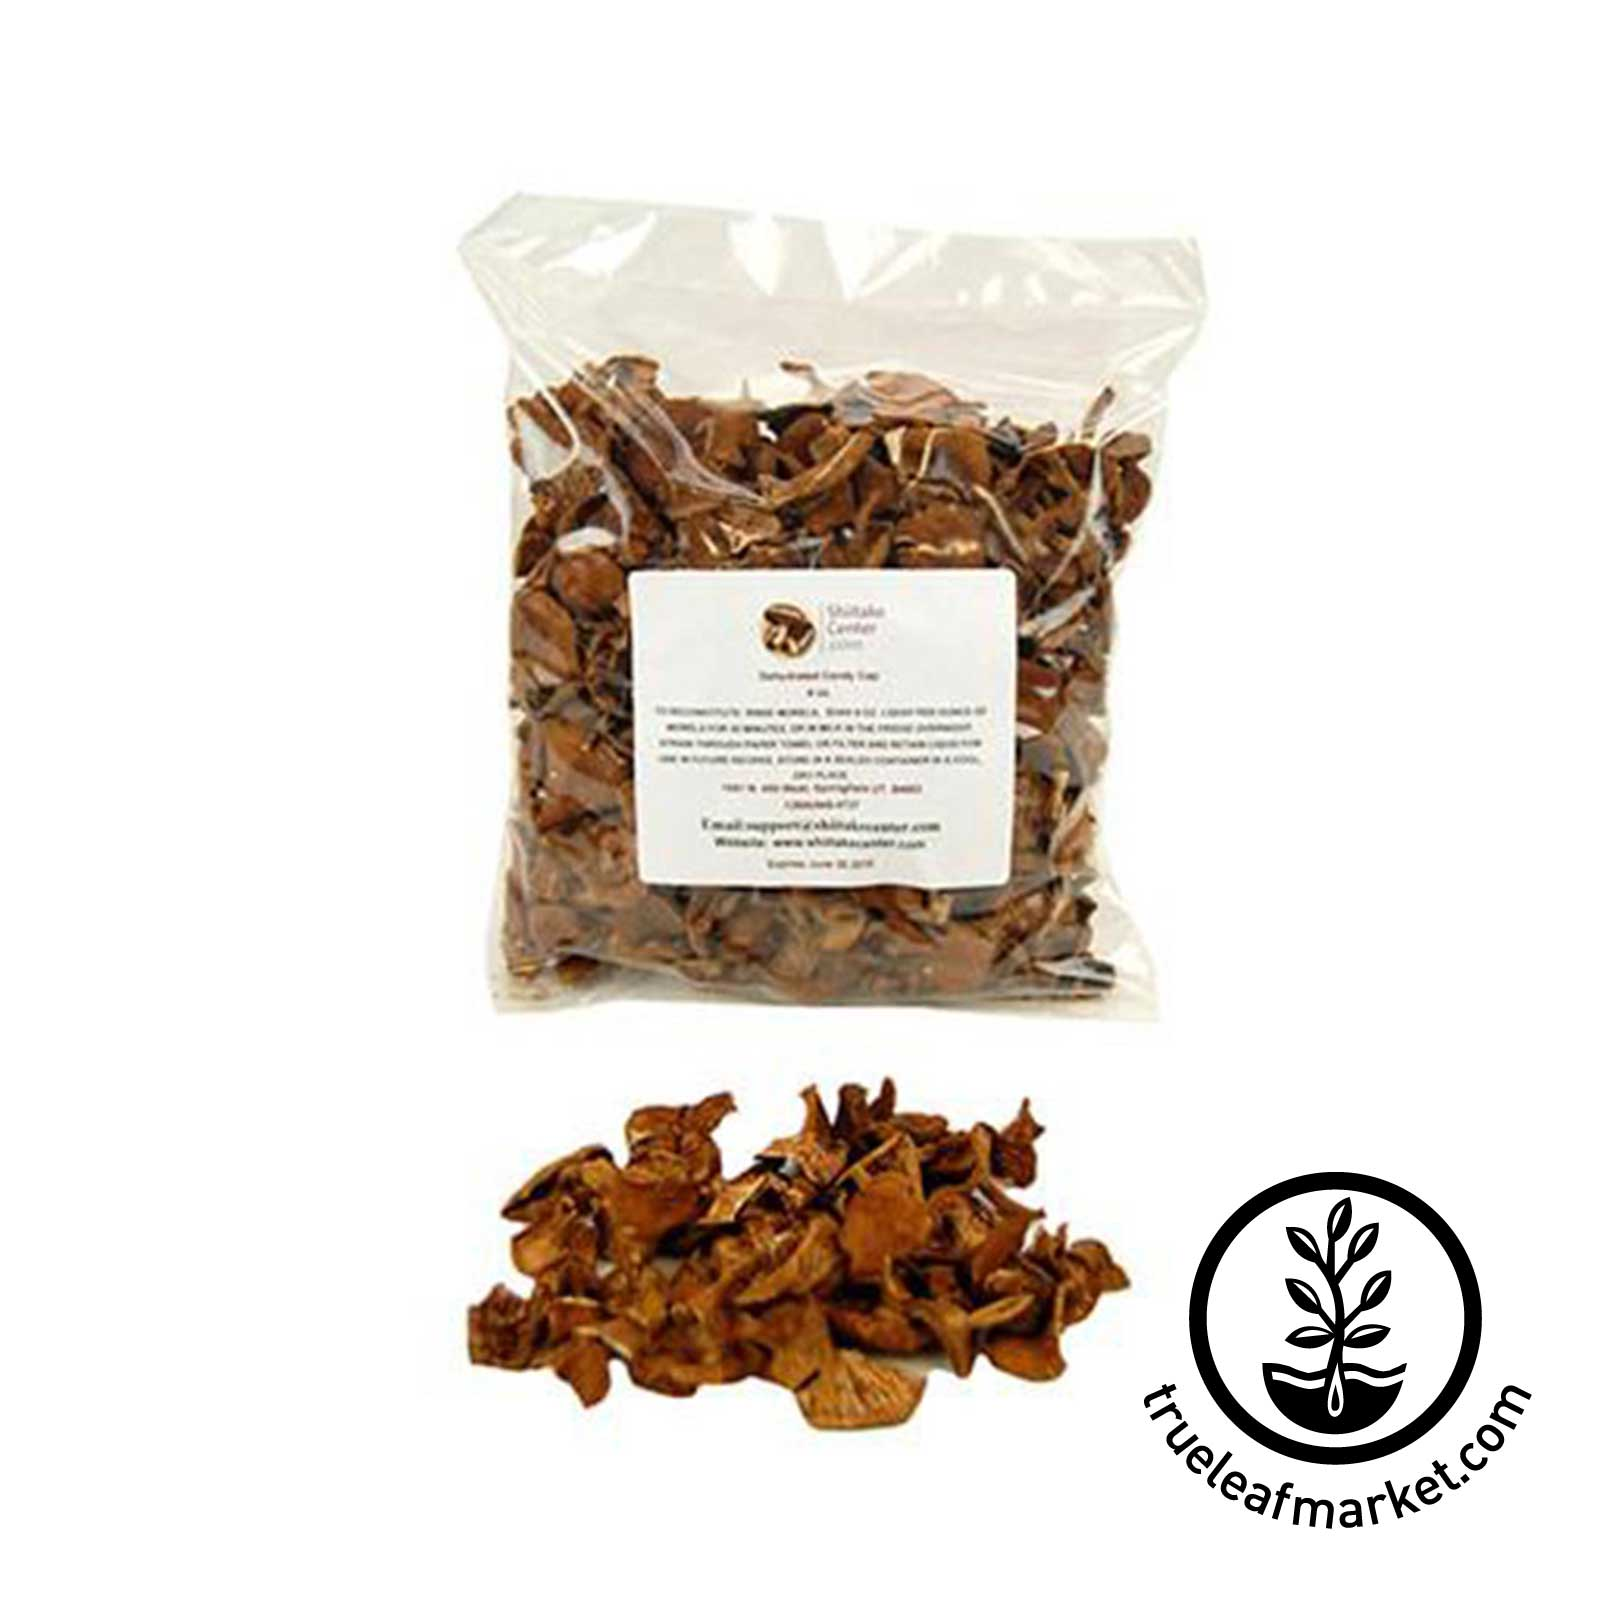 Candy Cap Mushrooms 4oz